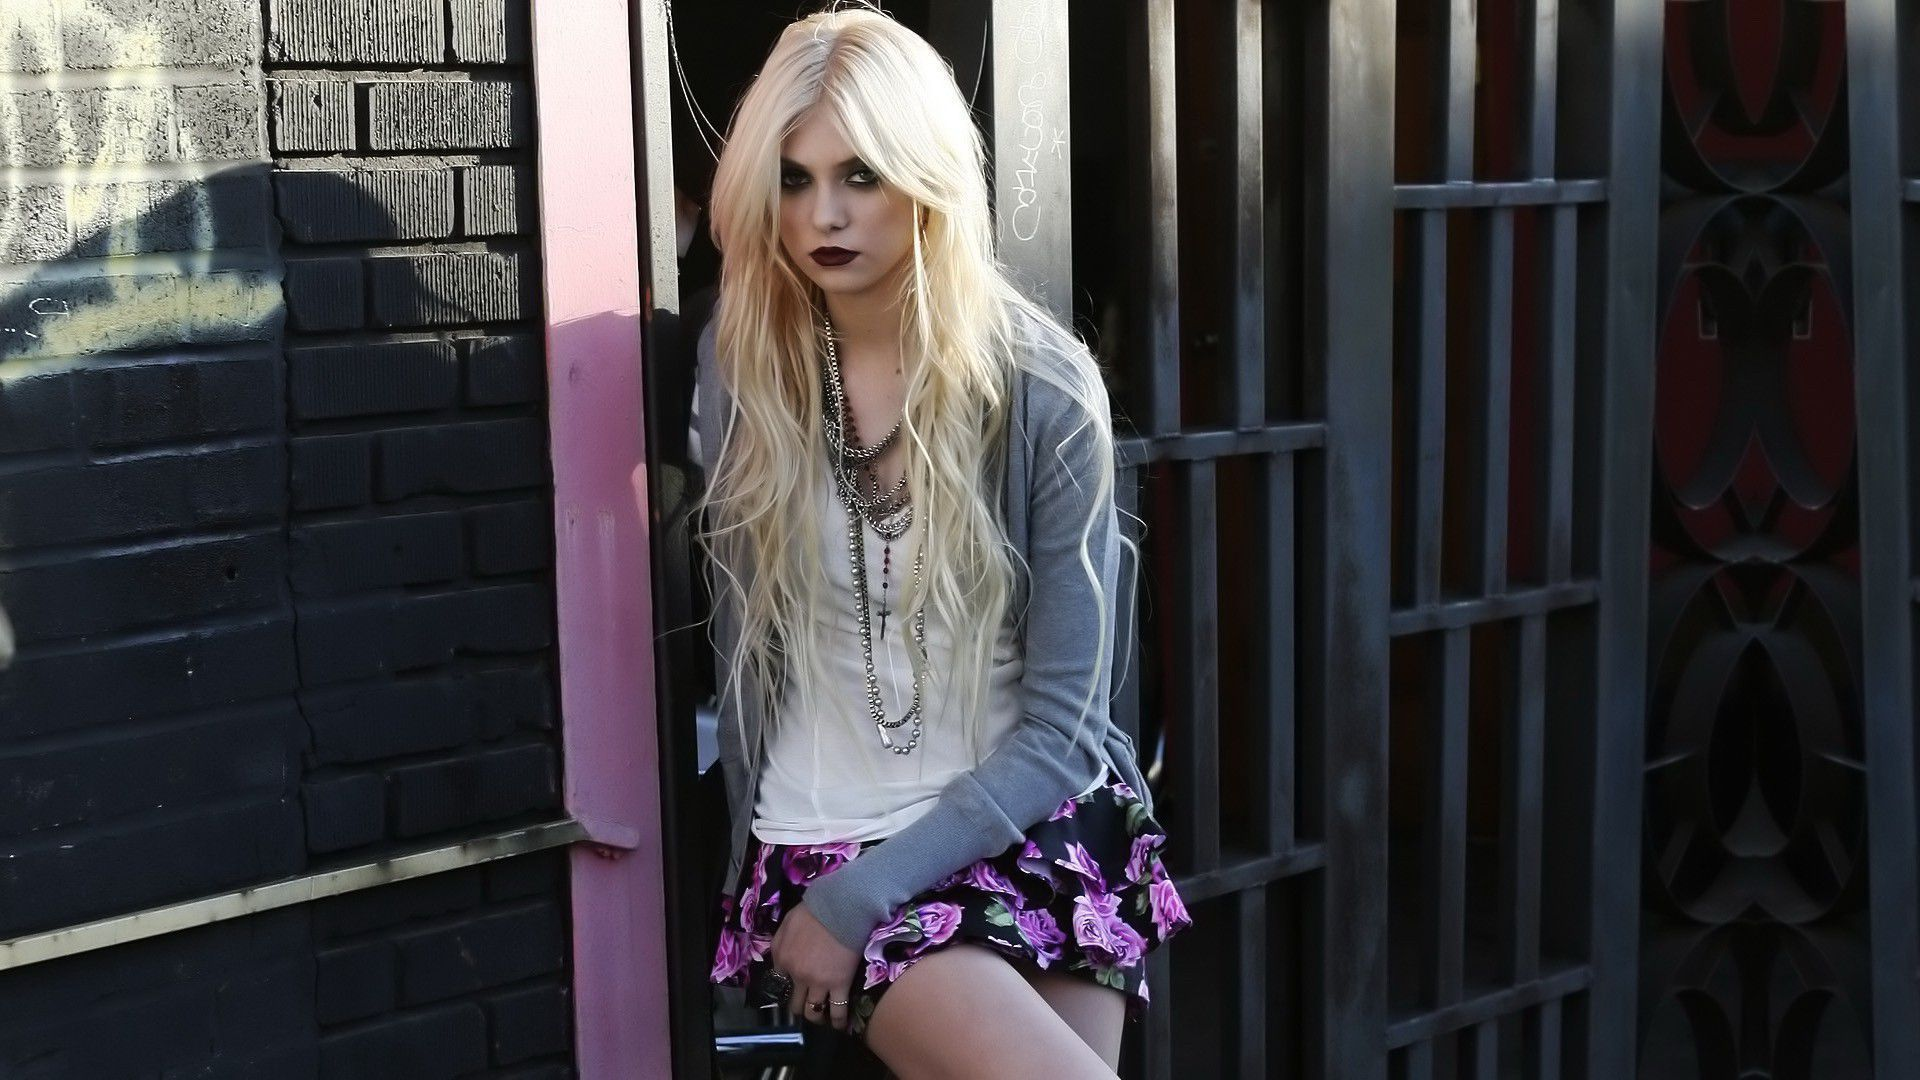 Pretty Anime Wallpaper Taylor Momsen Wallpapers Backgrounds